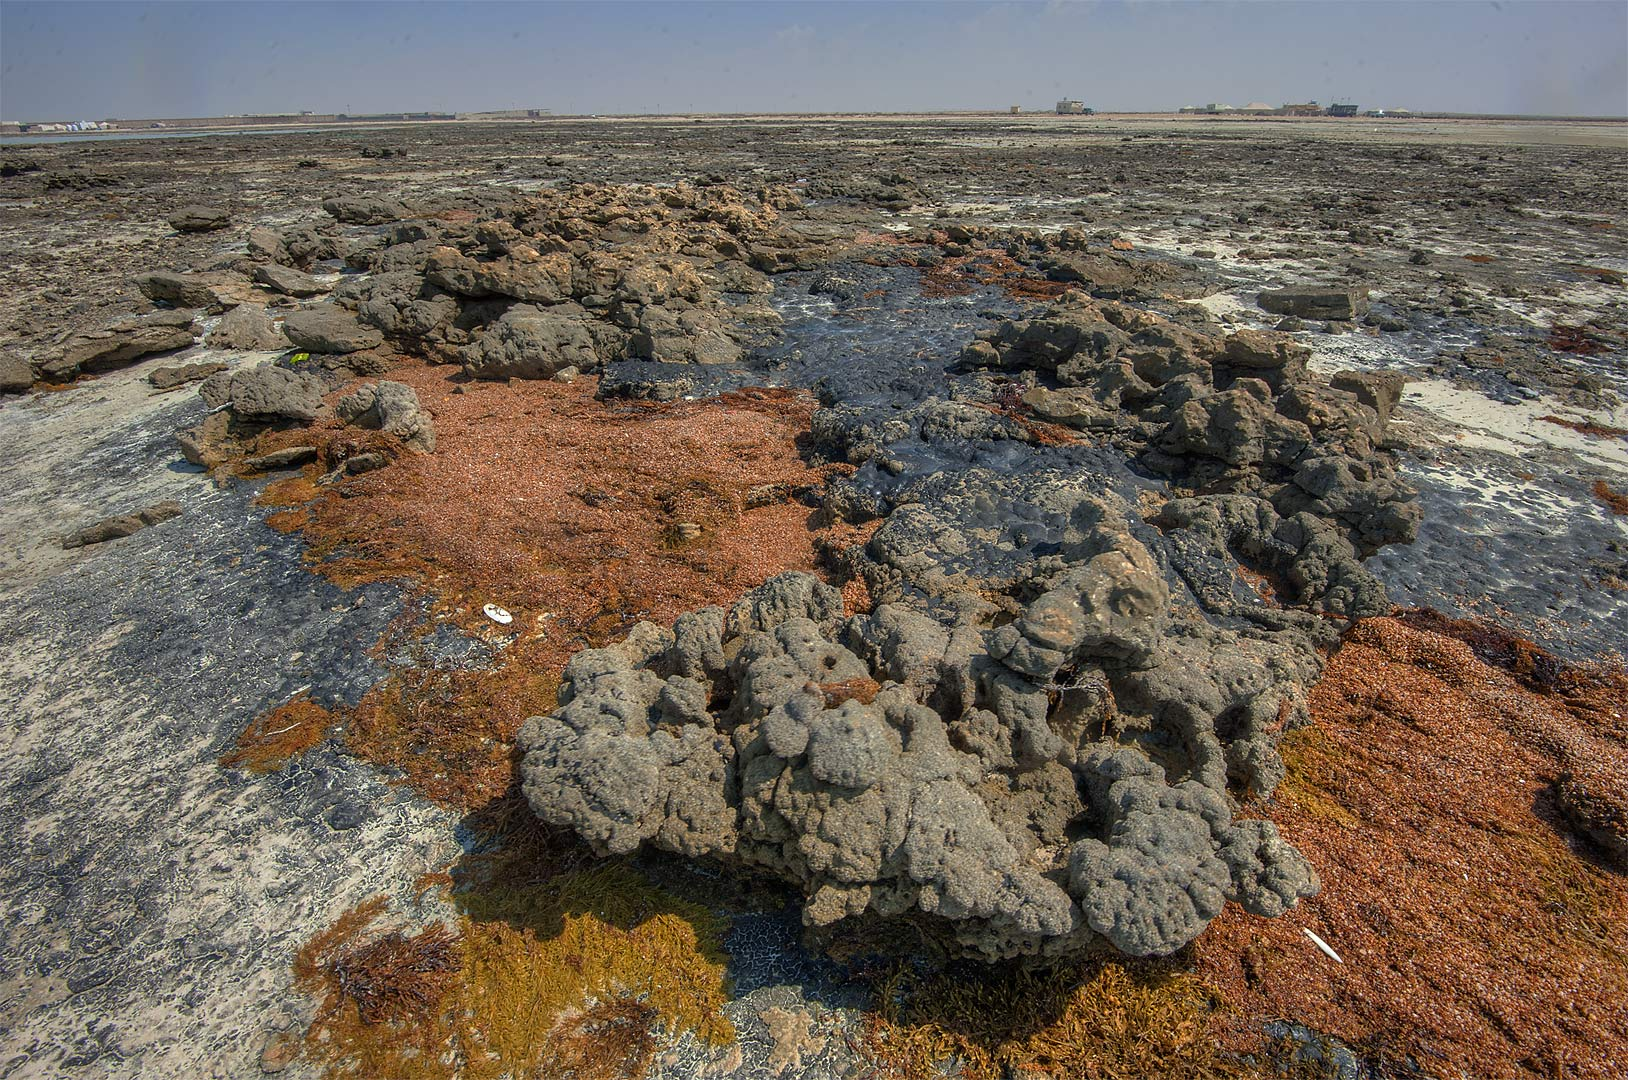 Beachrock covered by oil in Fraiha near Palace of...Al-Abdullah Al-Thani. Northern Qatar